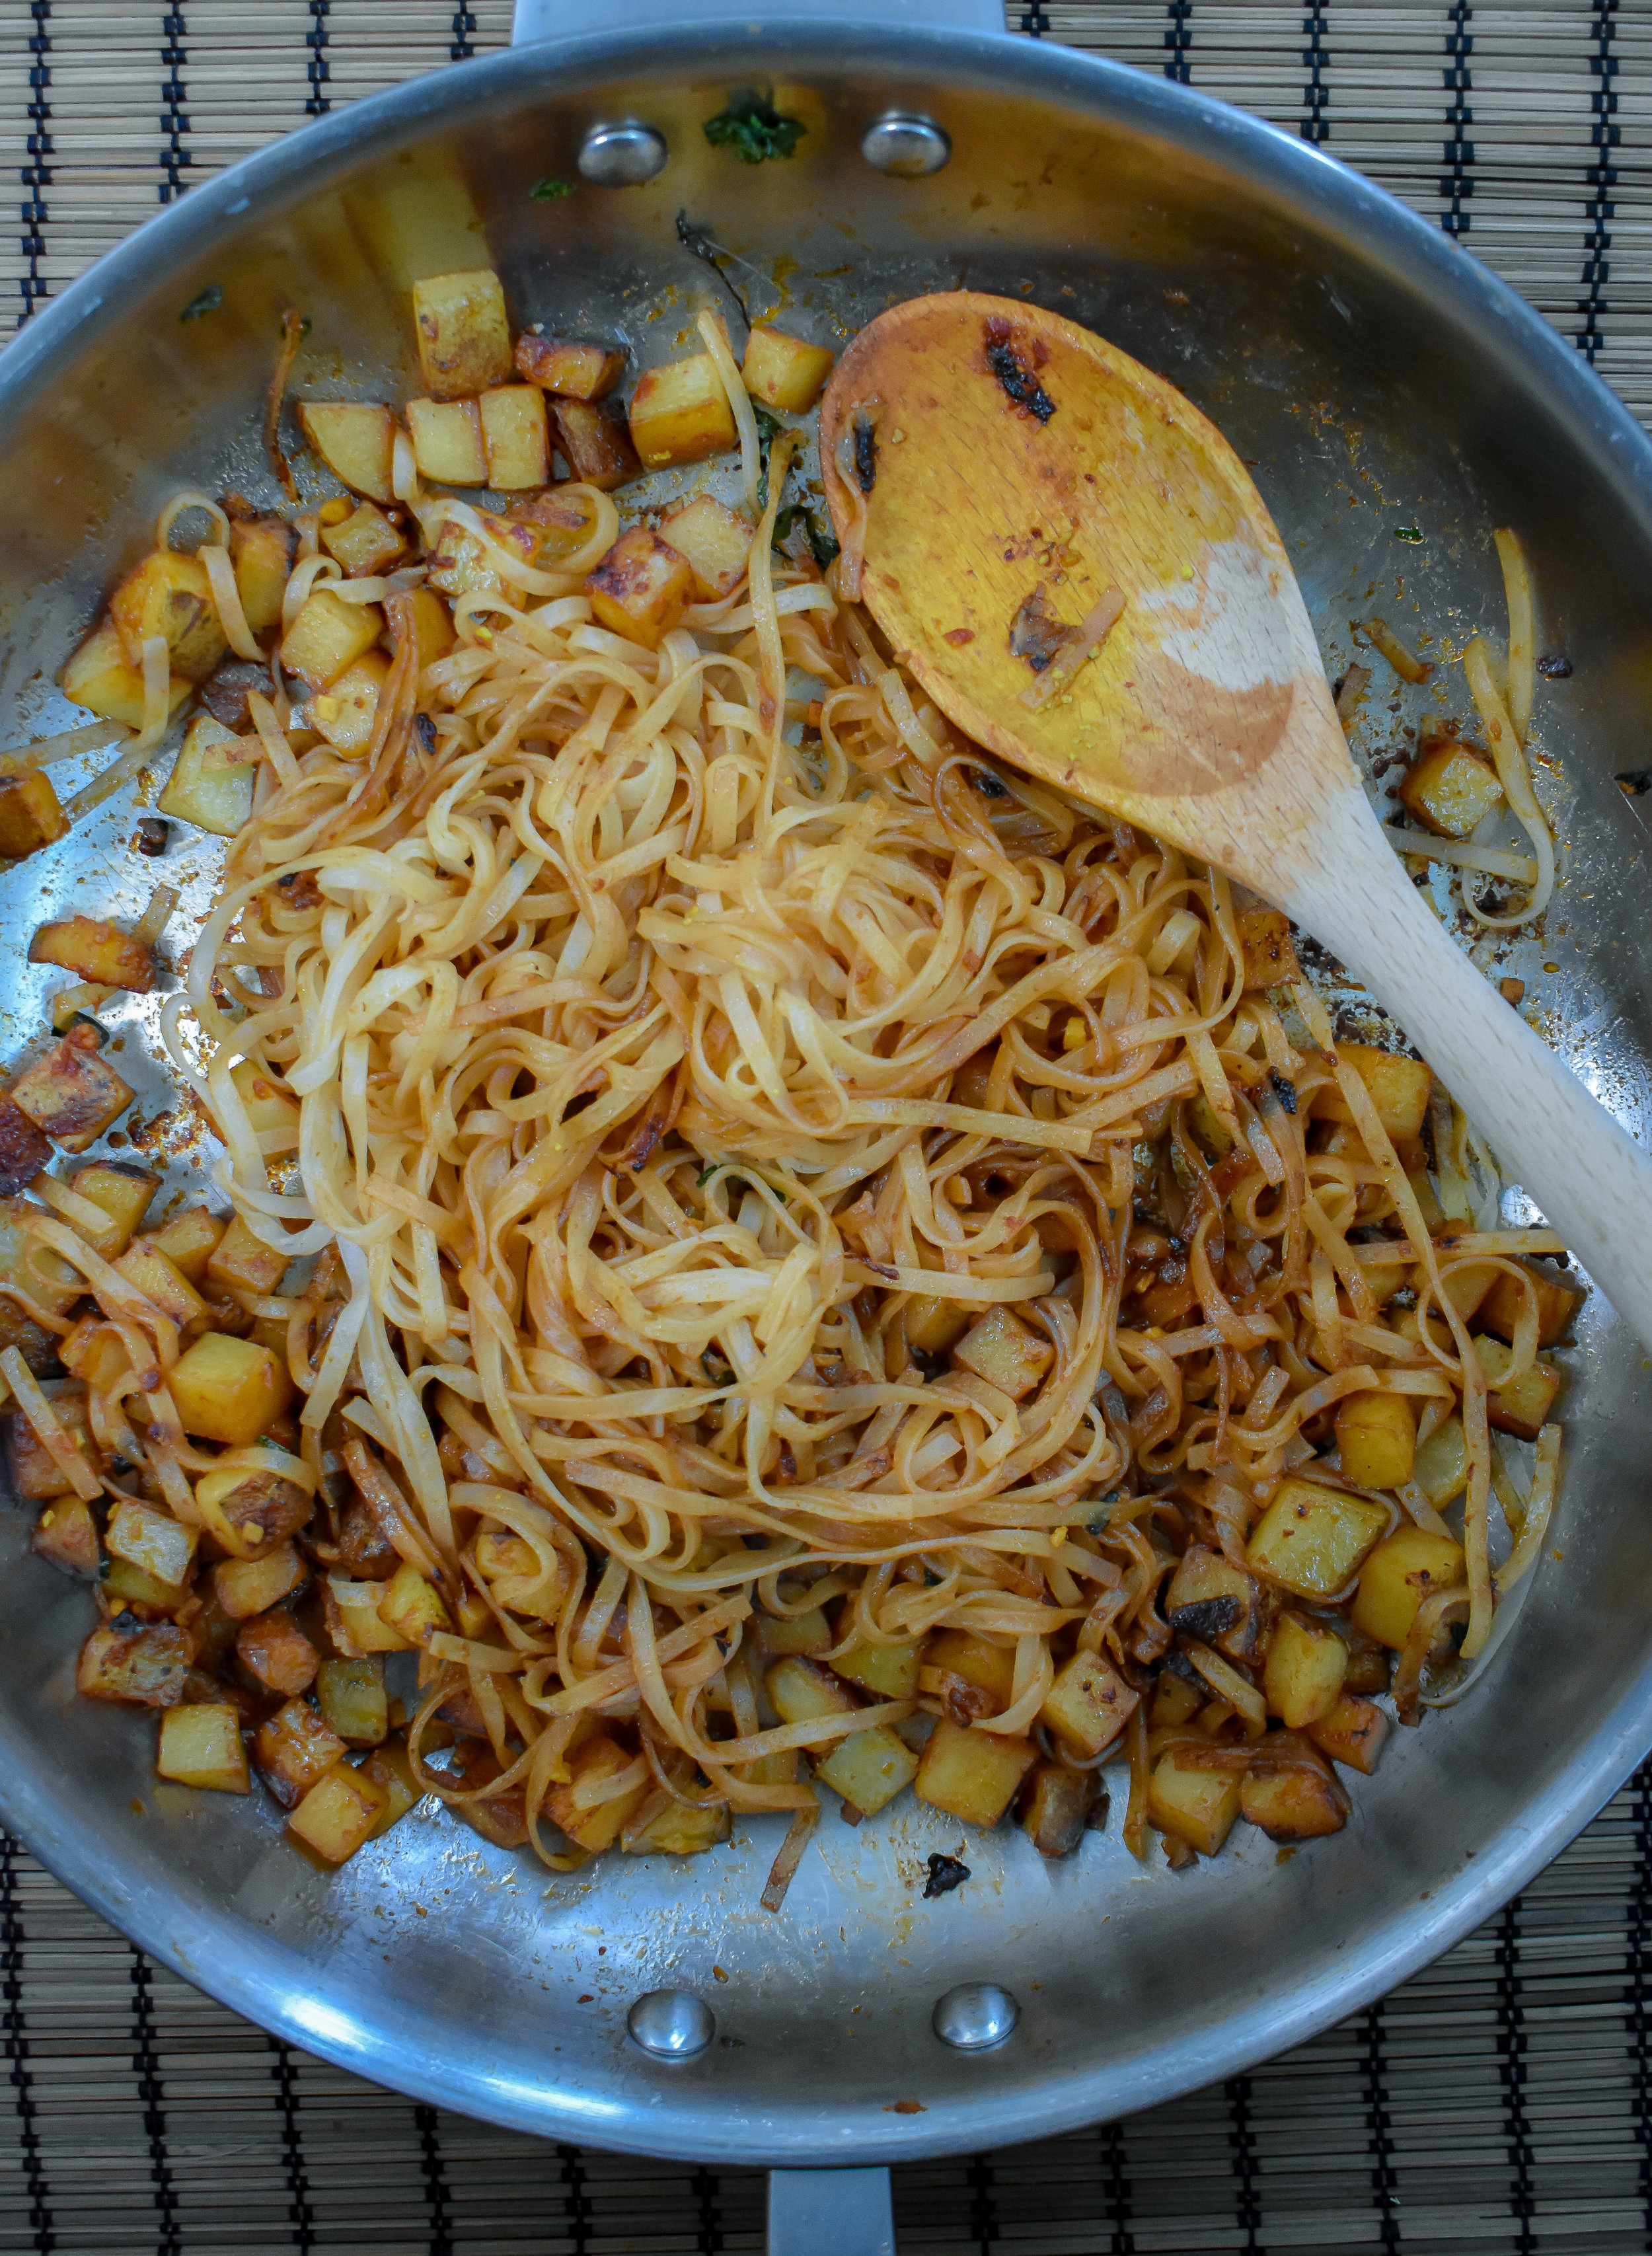 5. After cooking potatoes for about 6 minutes, throw in noodles as well as the pad thai sauce and cook for another 2-3 minutes. Set aside.